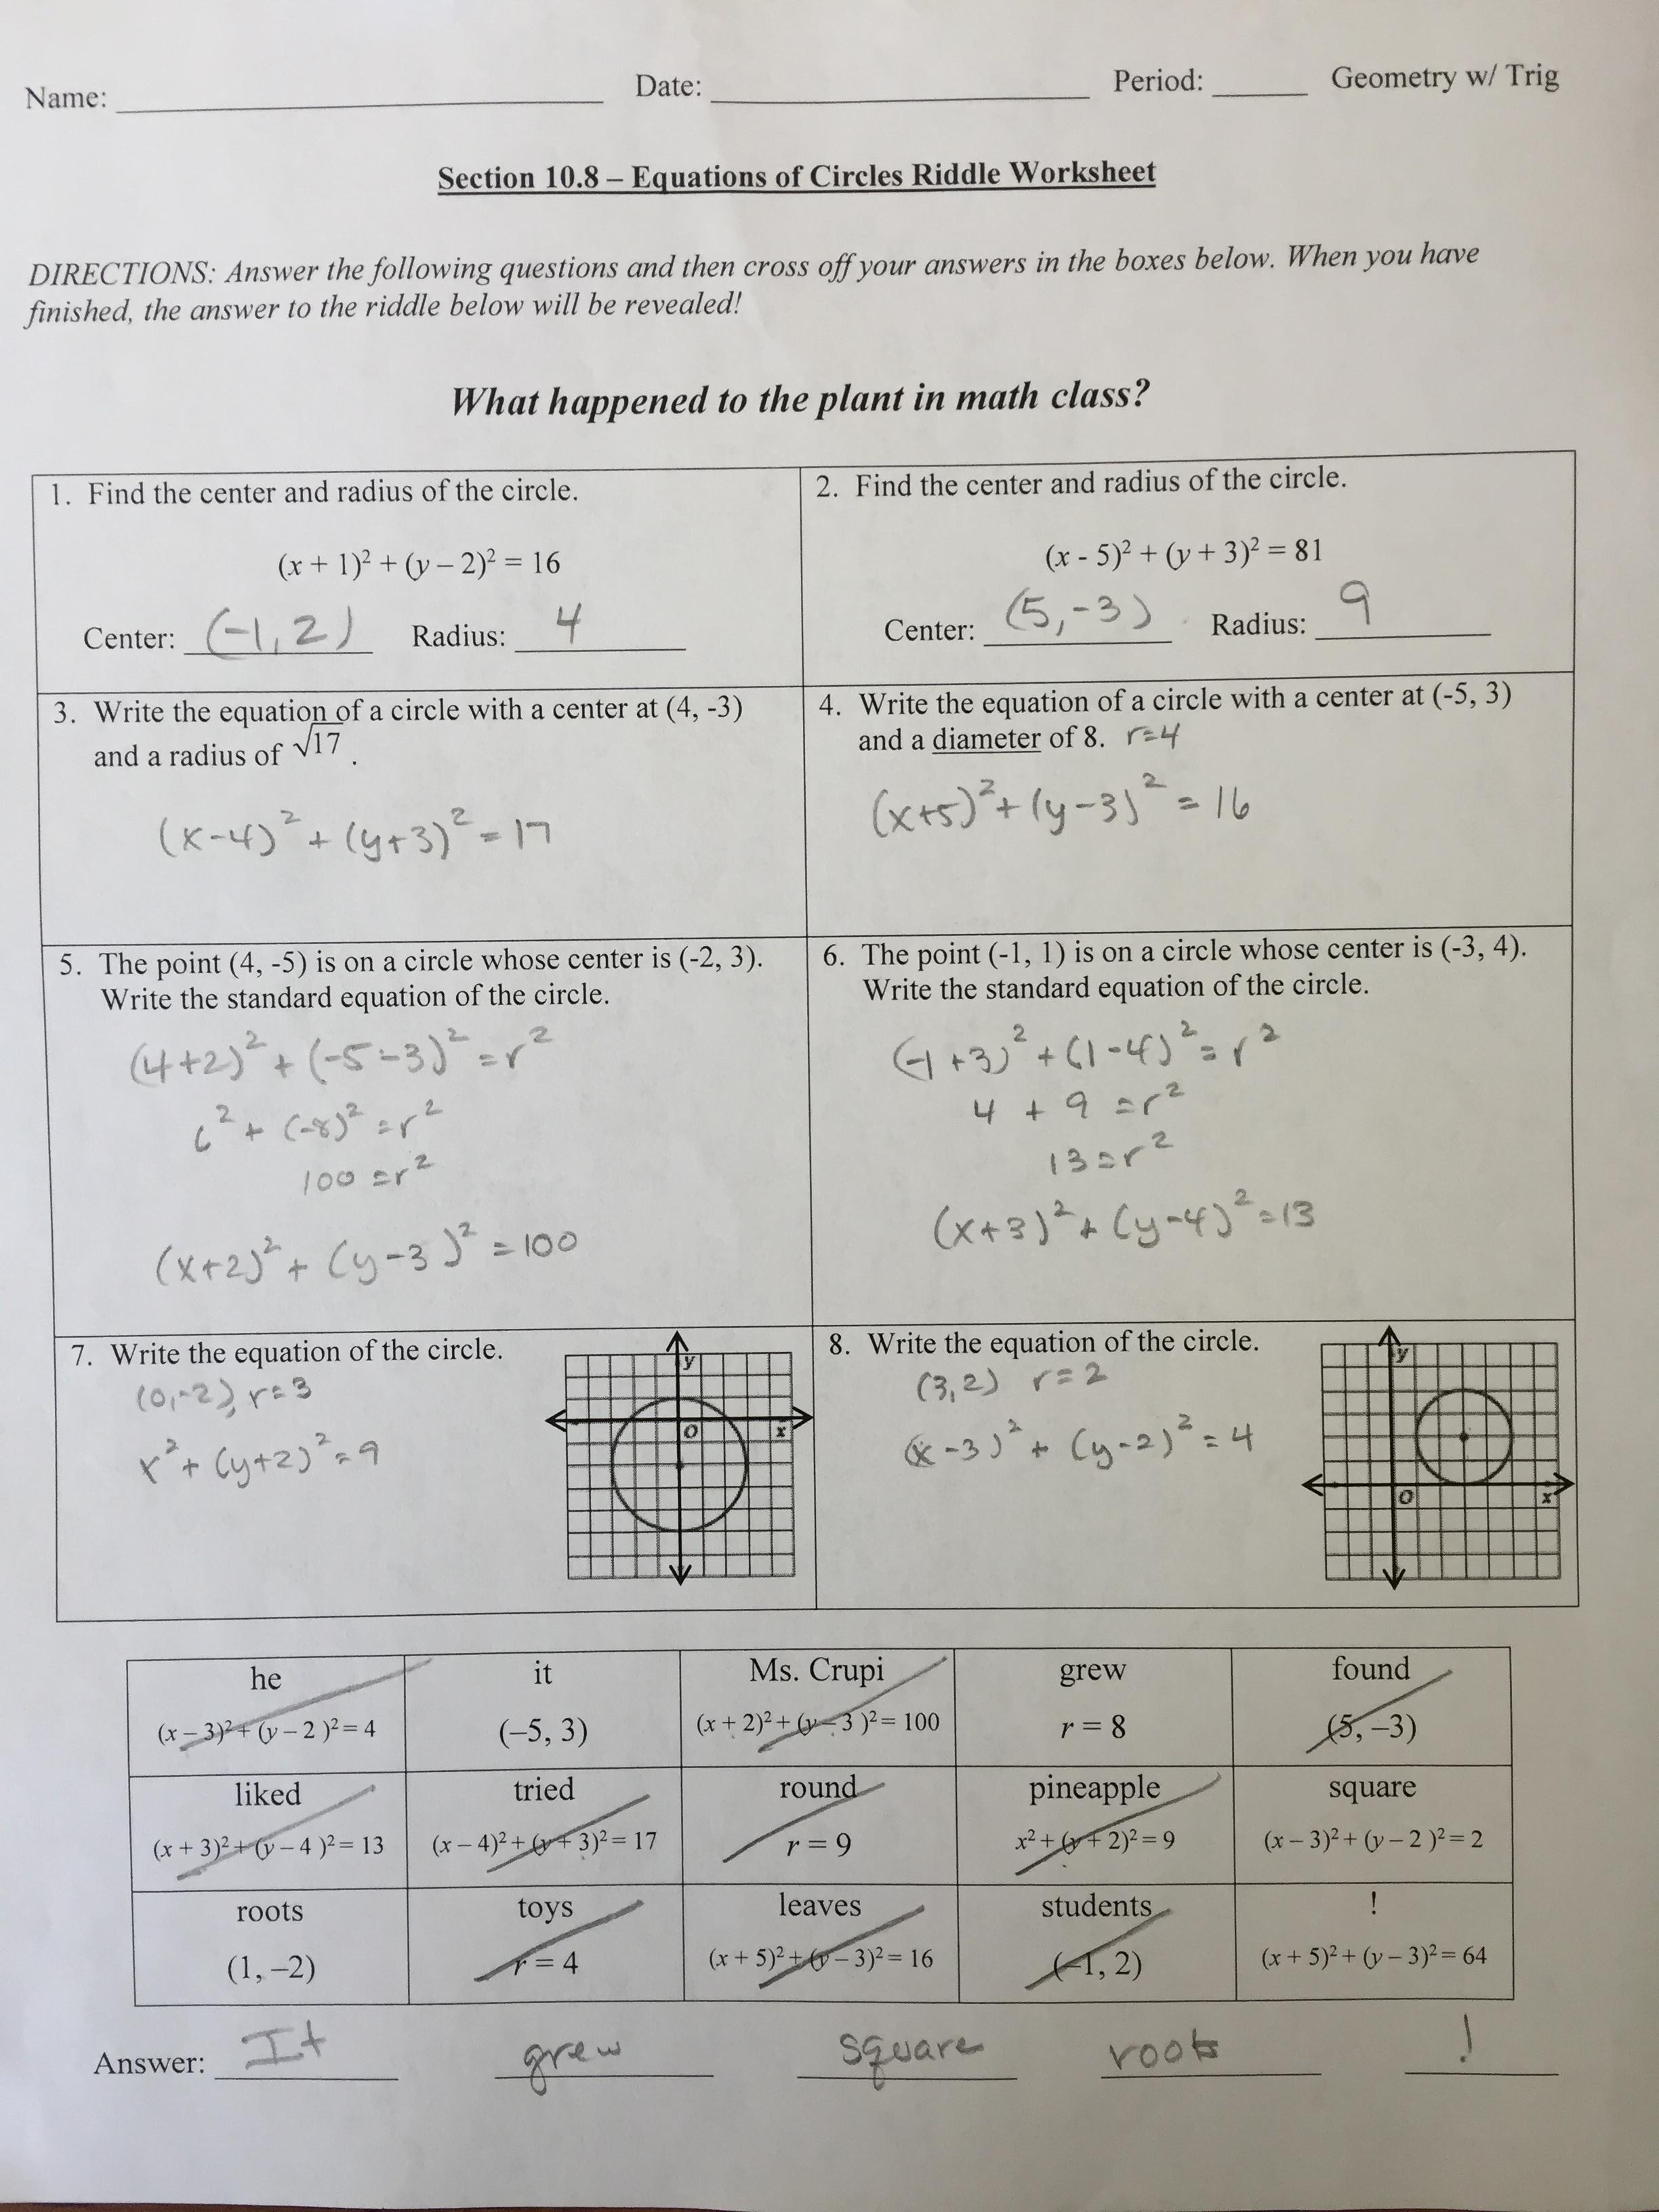 worksheet Writing Equations Of Circles crupi erin geometry extra practice with completing the square to write equations of circles 10 8